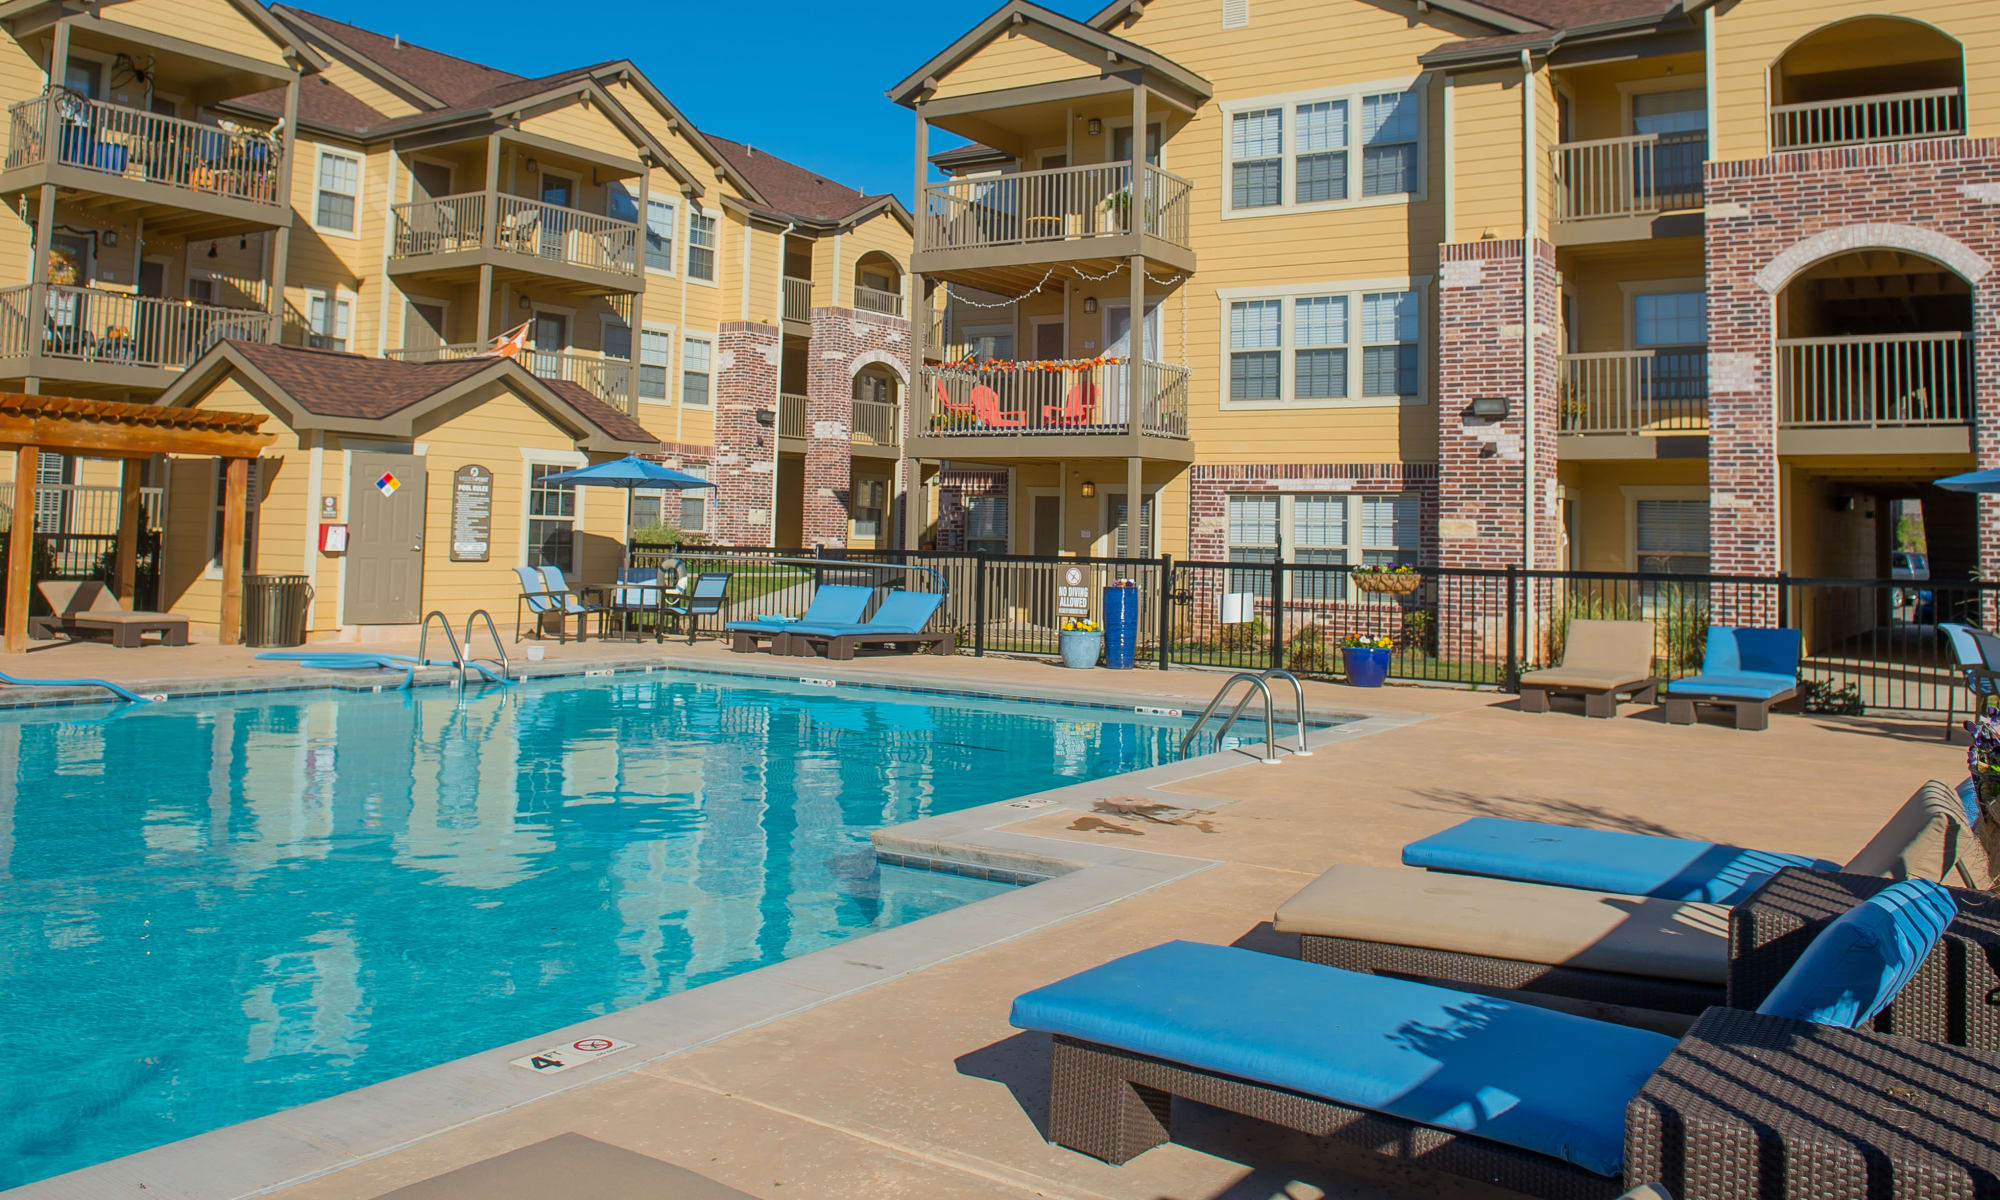 Mission Point Apartments in Moore, Oklahoma